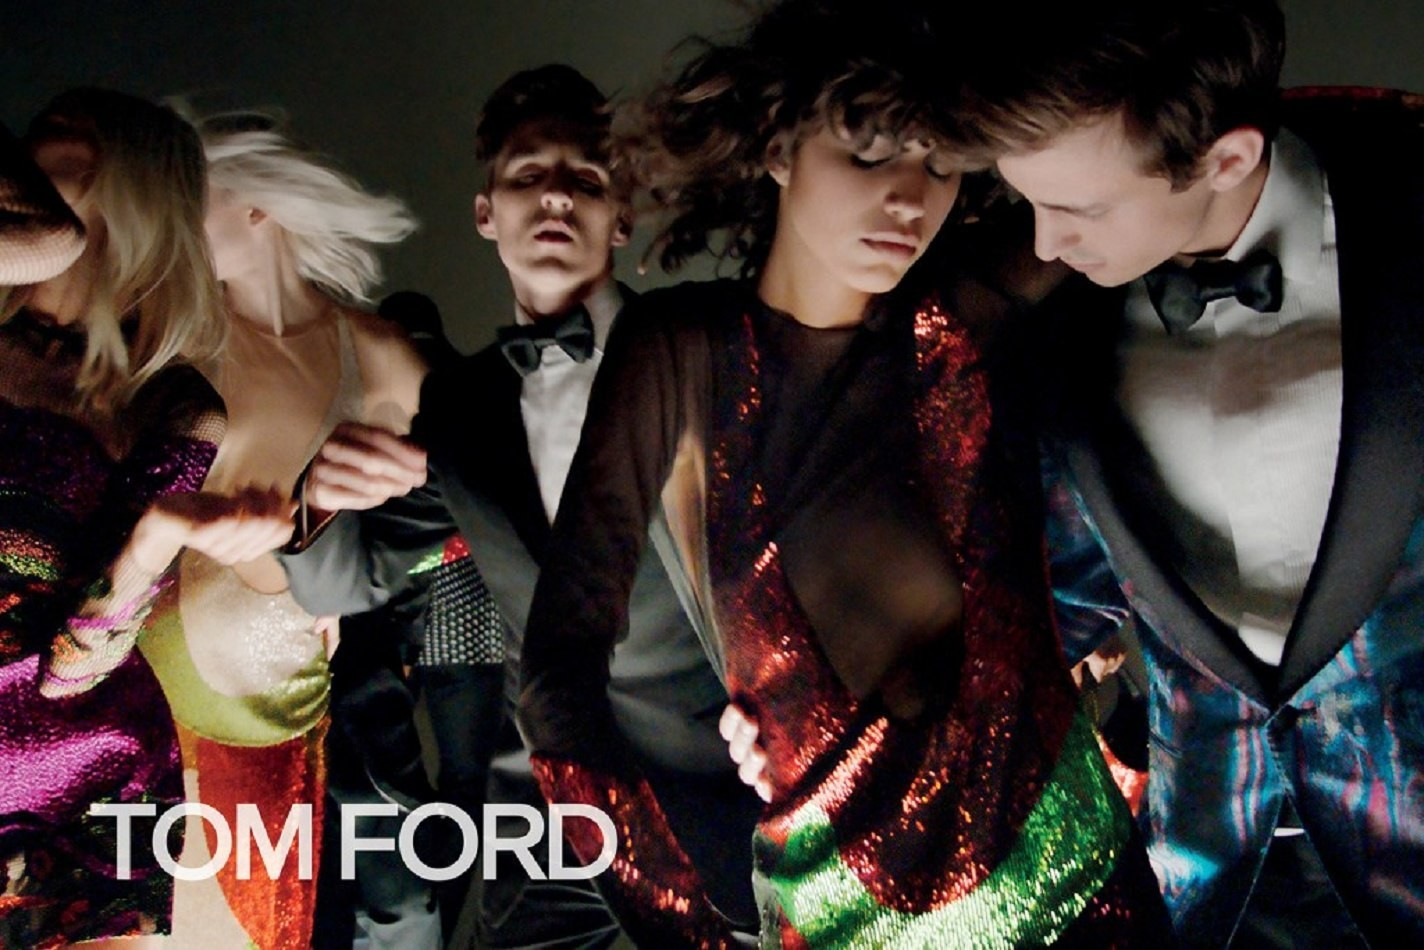 Thomas For Tom Ford S/S 2016